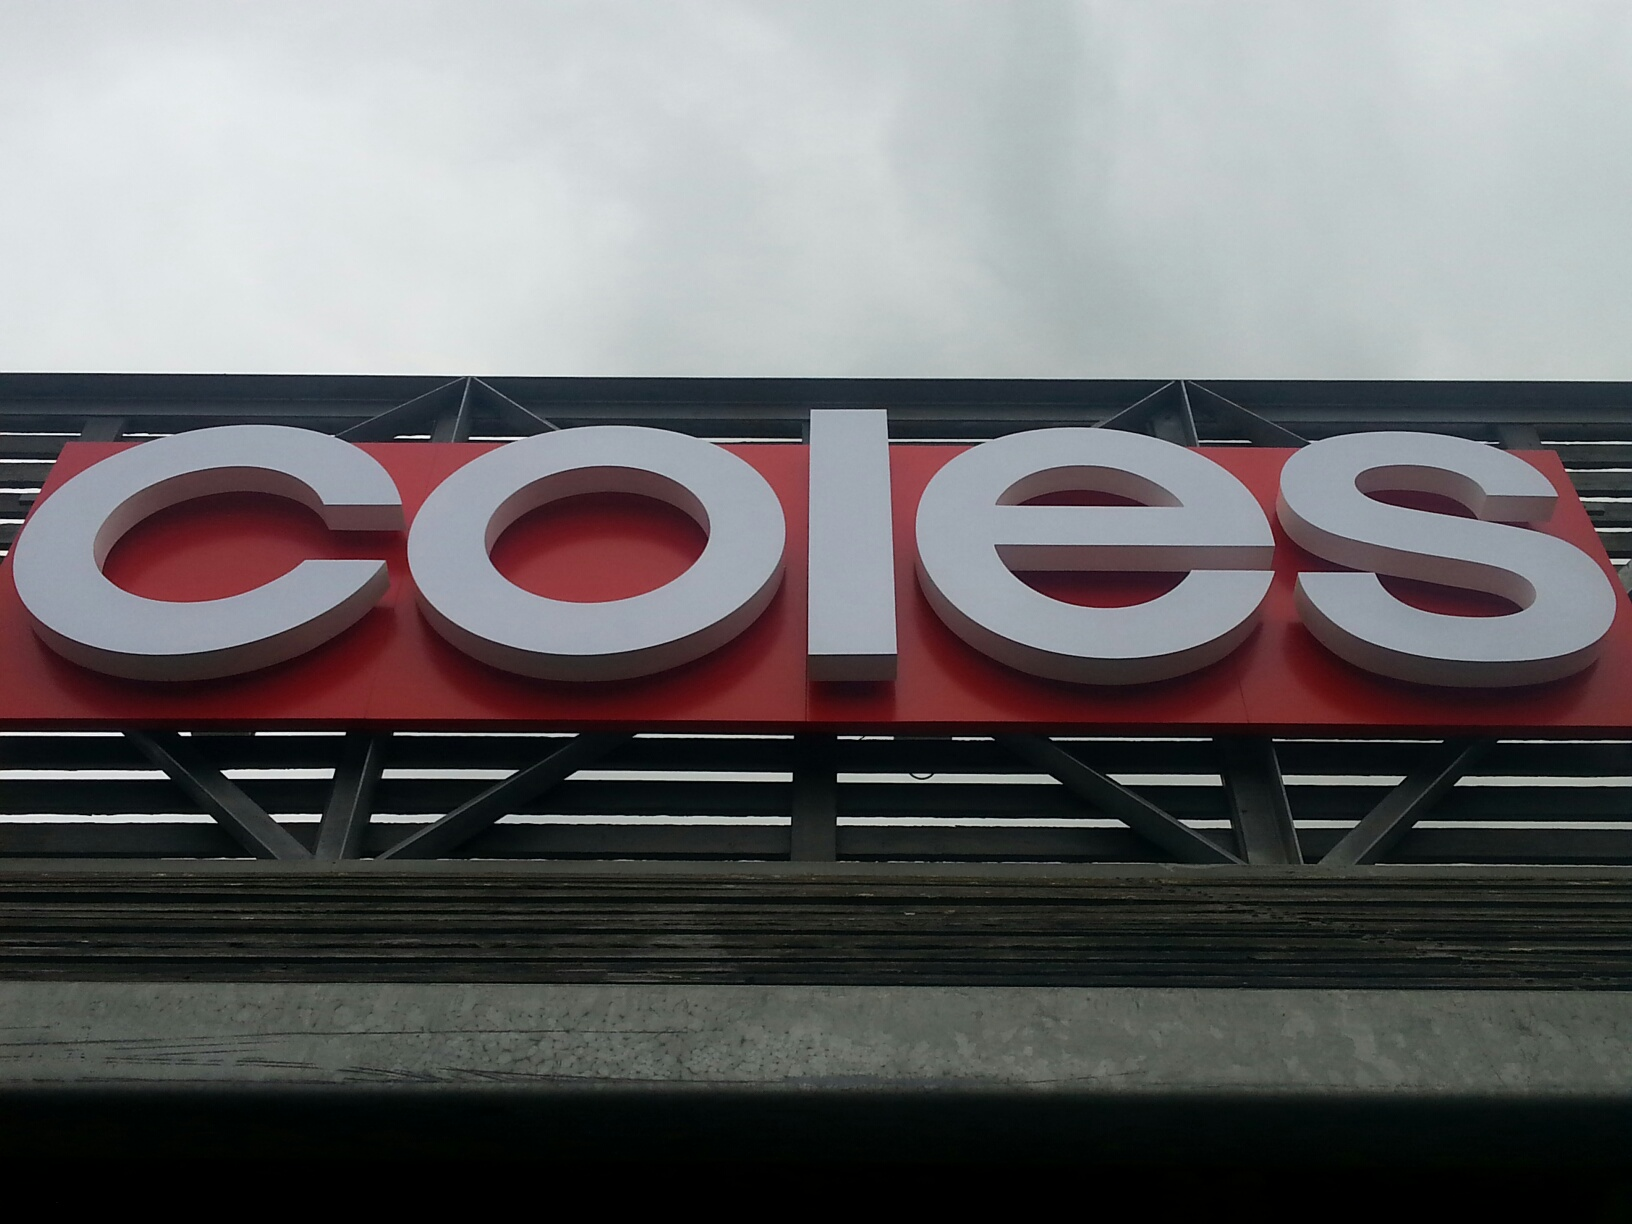 Coles 'Tin Shed'